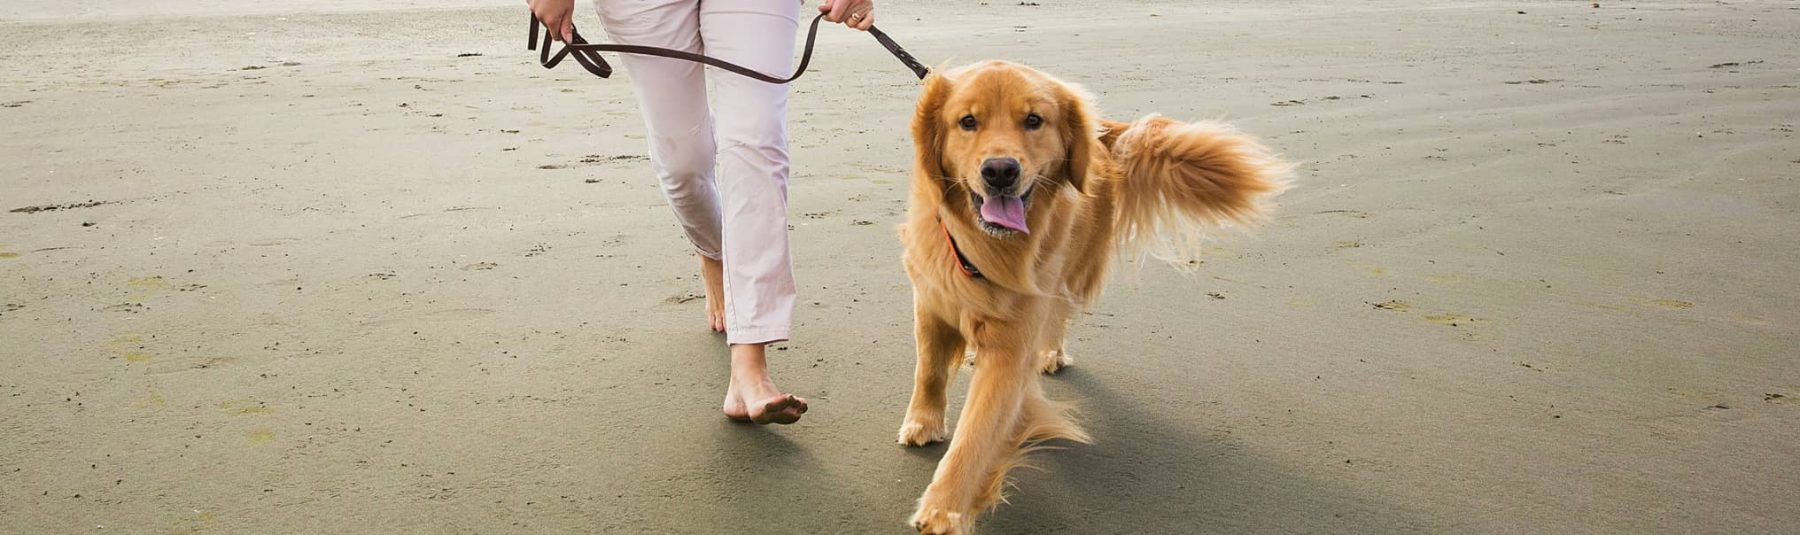 Dog owner walking a dog on the beach